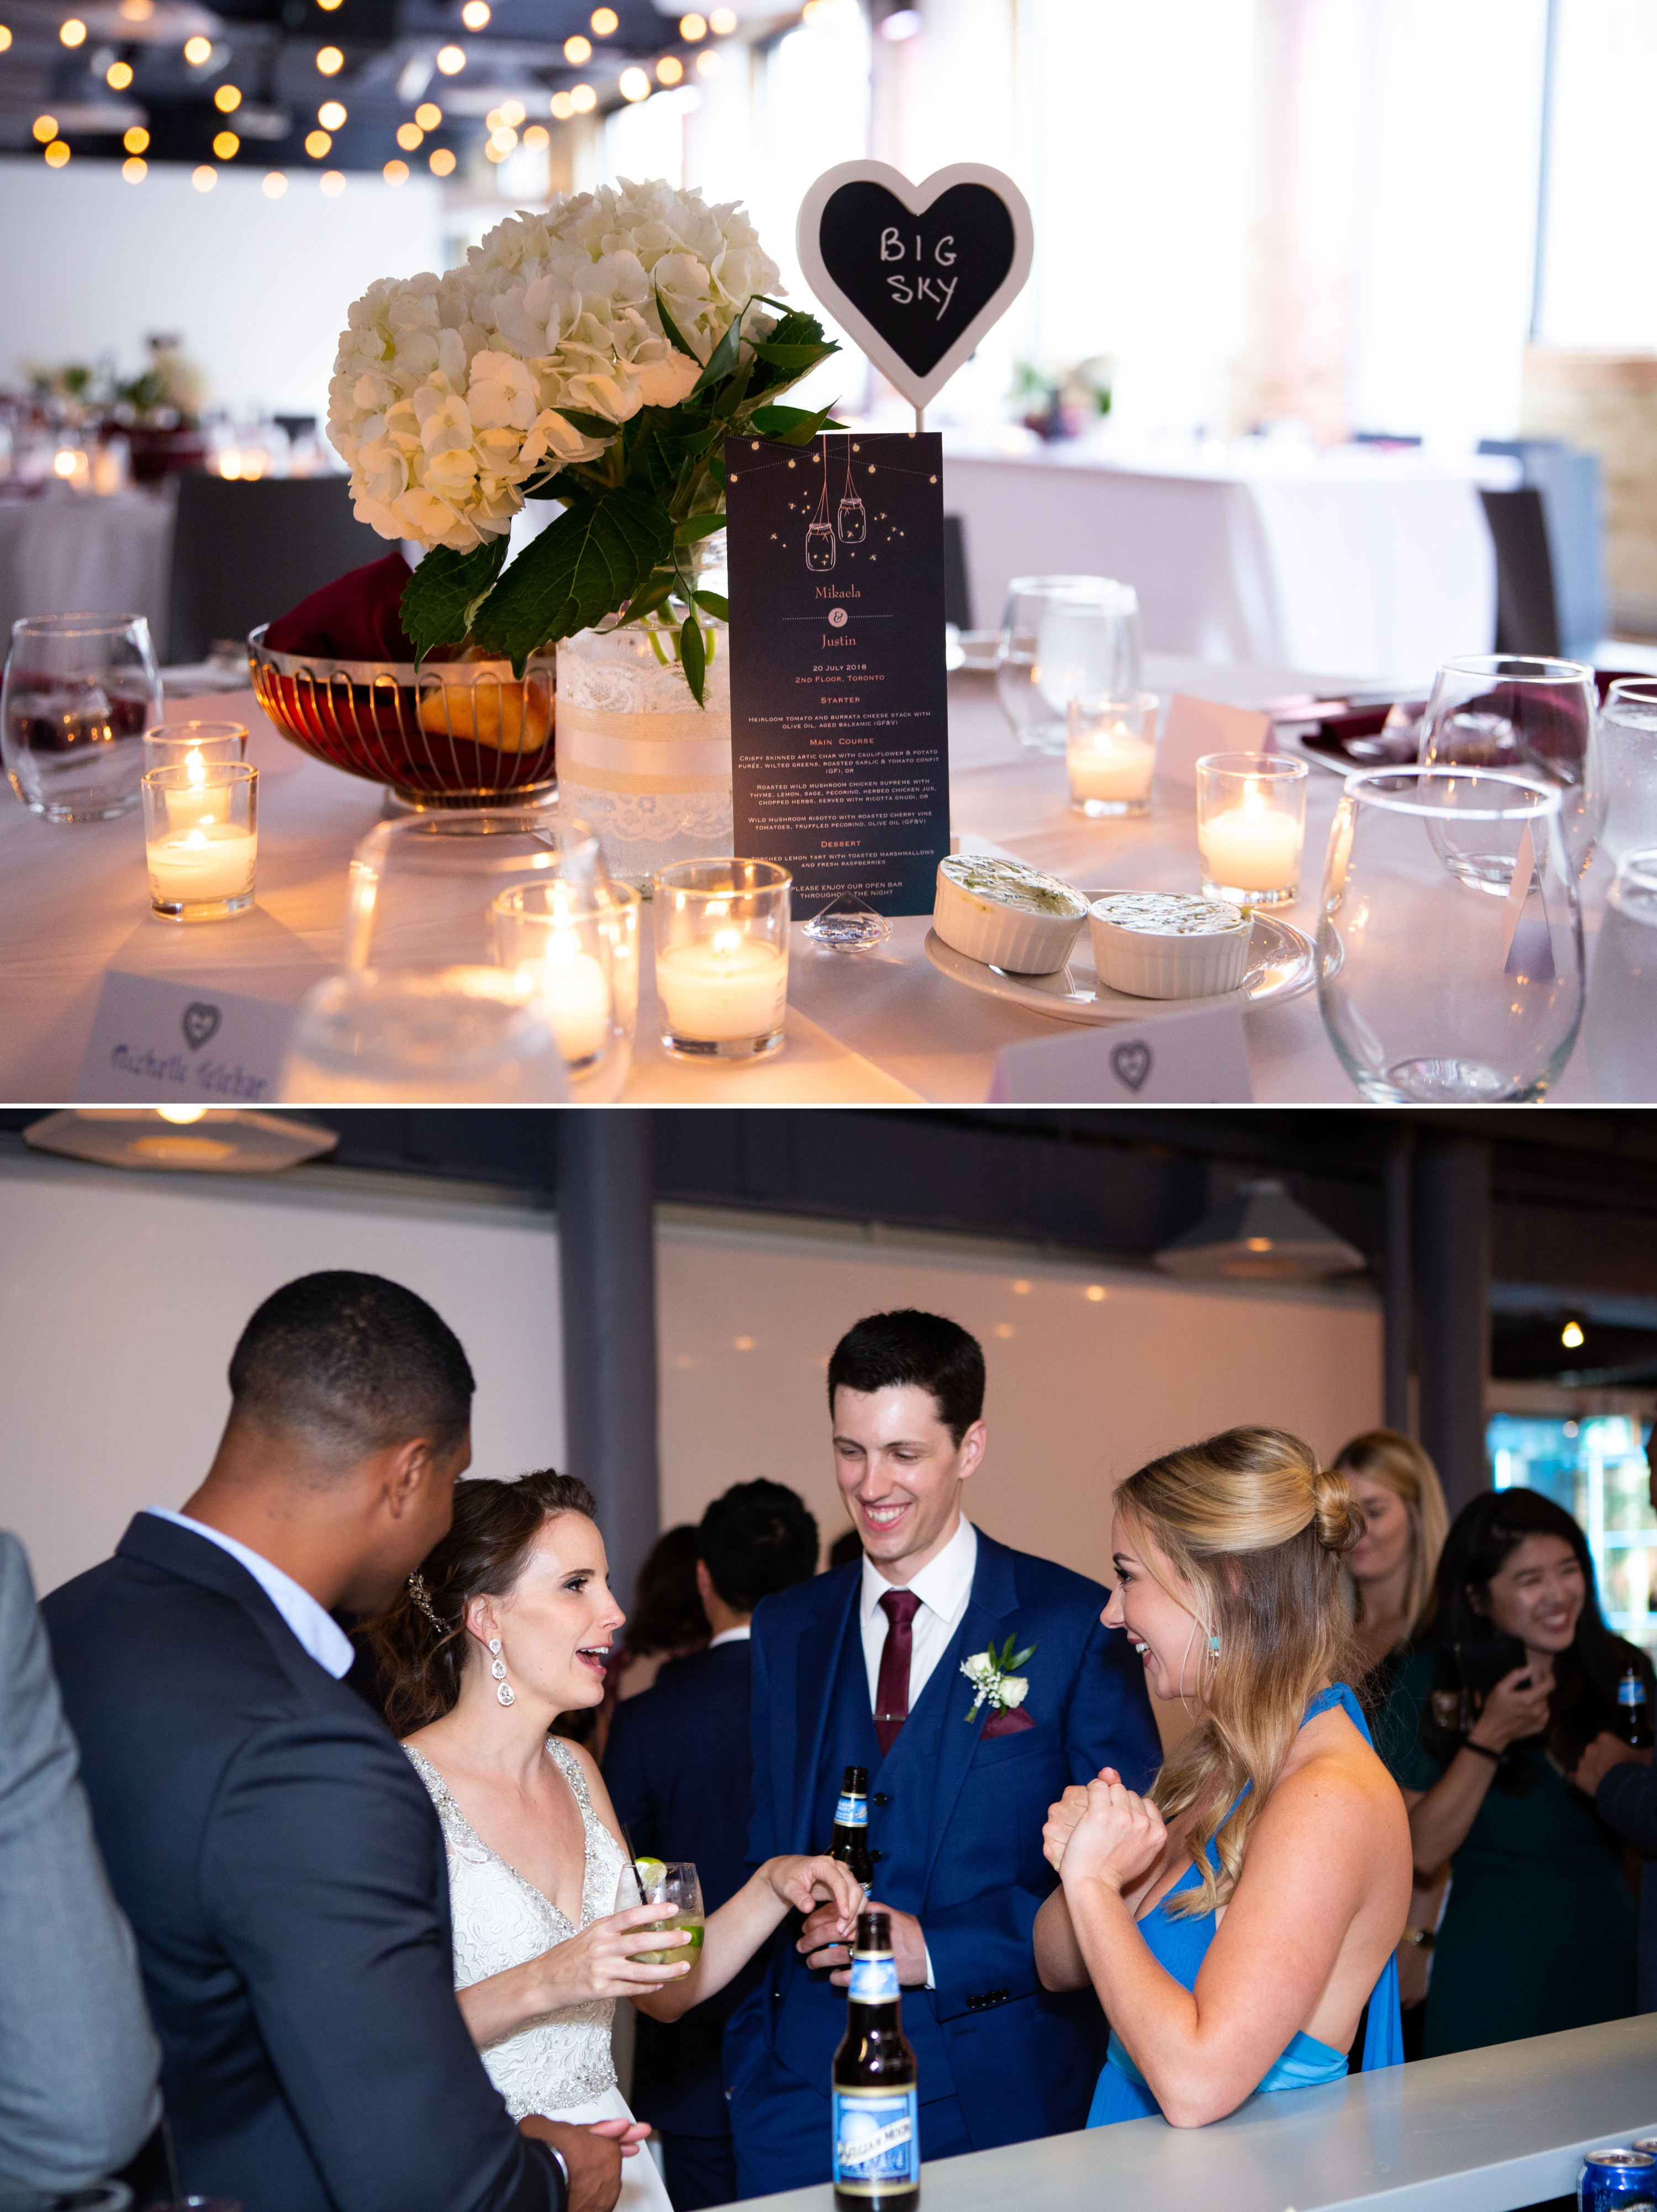 Cnadid Toronto Wedding 2nd Floor Events Zsuzsi Pal Photography Reception